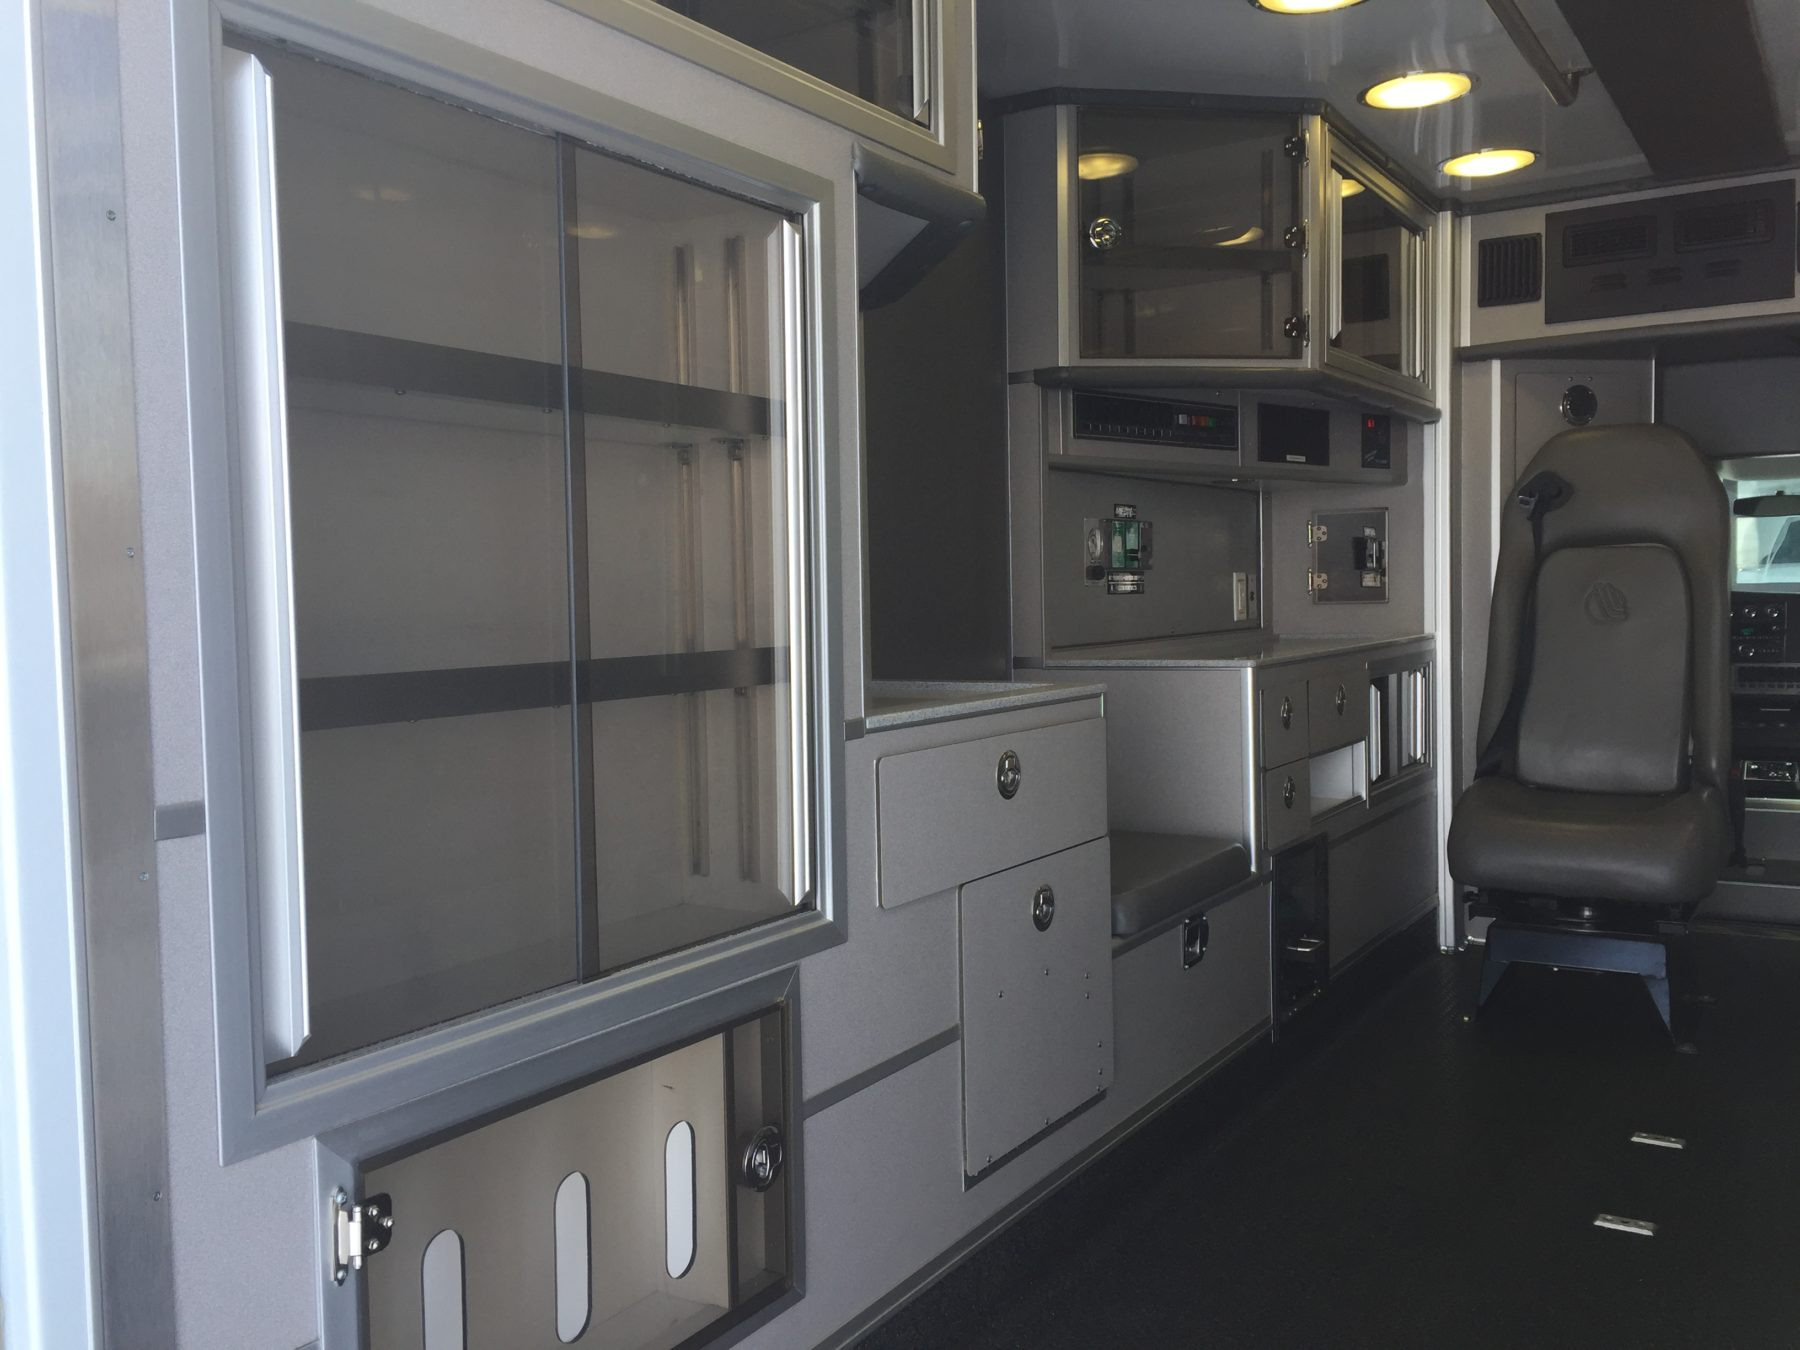 2010 Chevrolet G4500 Type 3 Ambulance For Sale – Picture 12